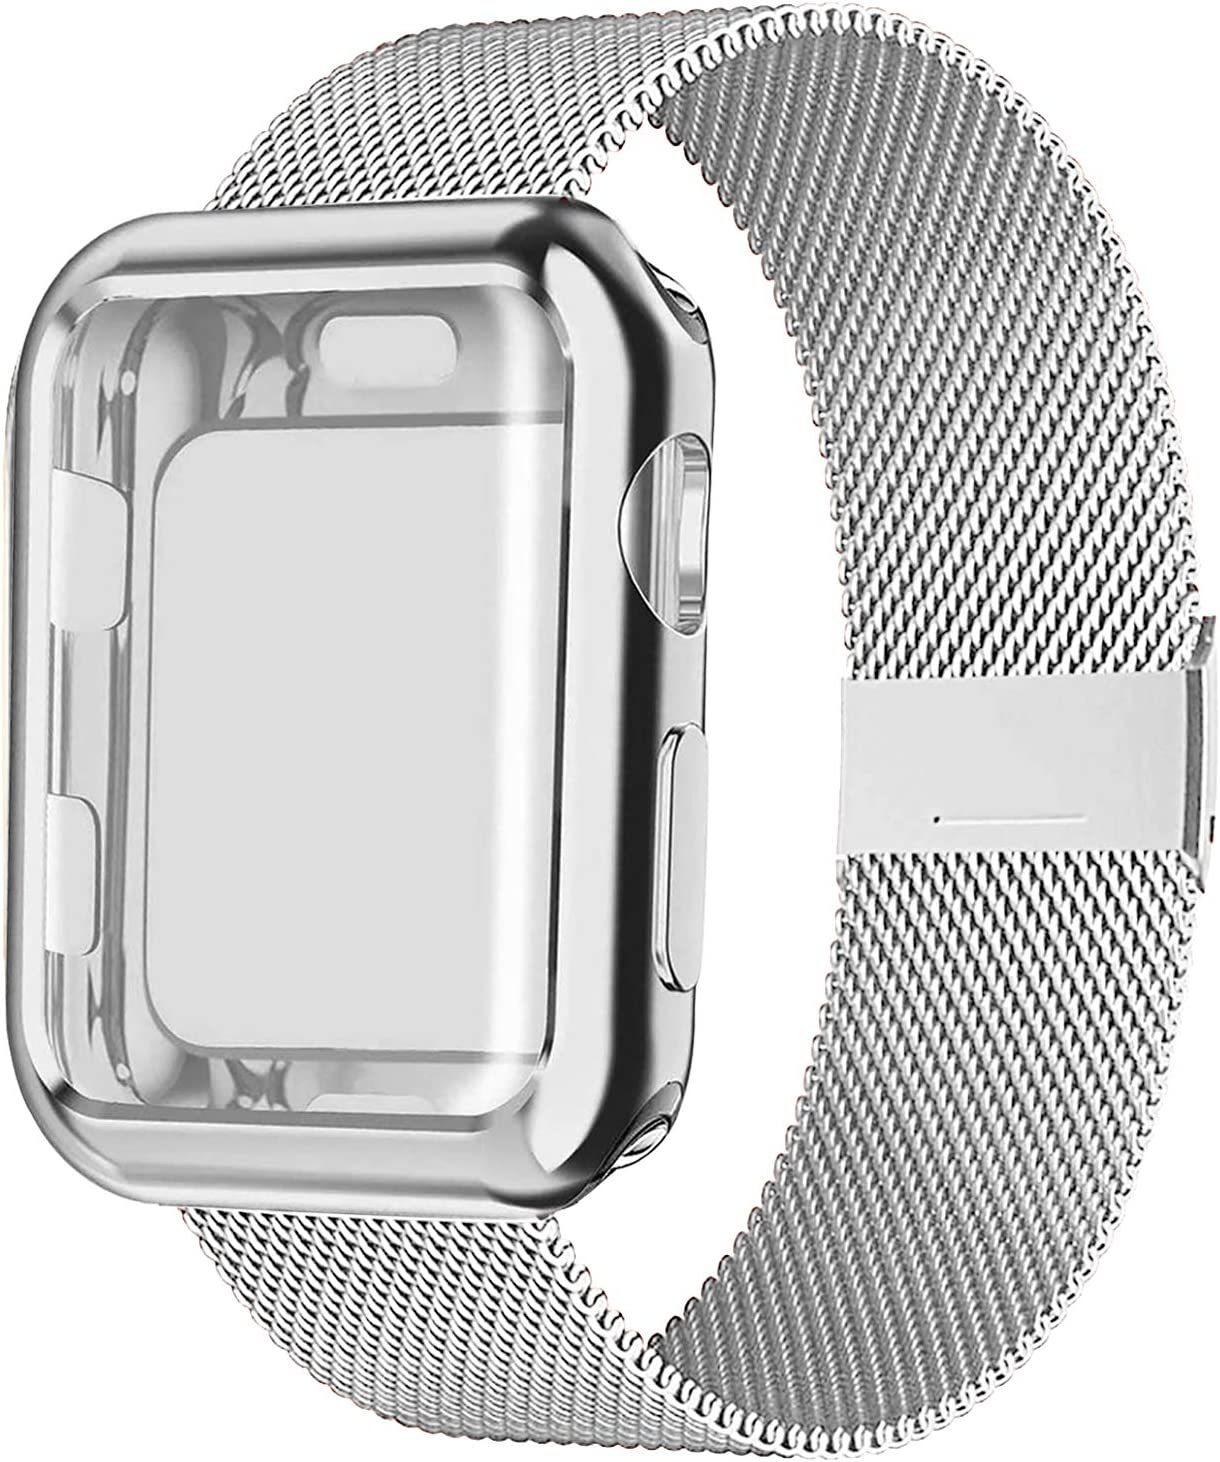 SinJonden Compatible with Apple Watch Band 38mm 40mm 42mm 44mm with Case,Stainless Steel Wristband with Protective Screen Case for iWatch Series 6/5/4/3/2/1/SE (Silver with Silver Case, 38mm)